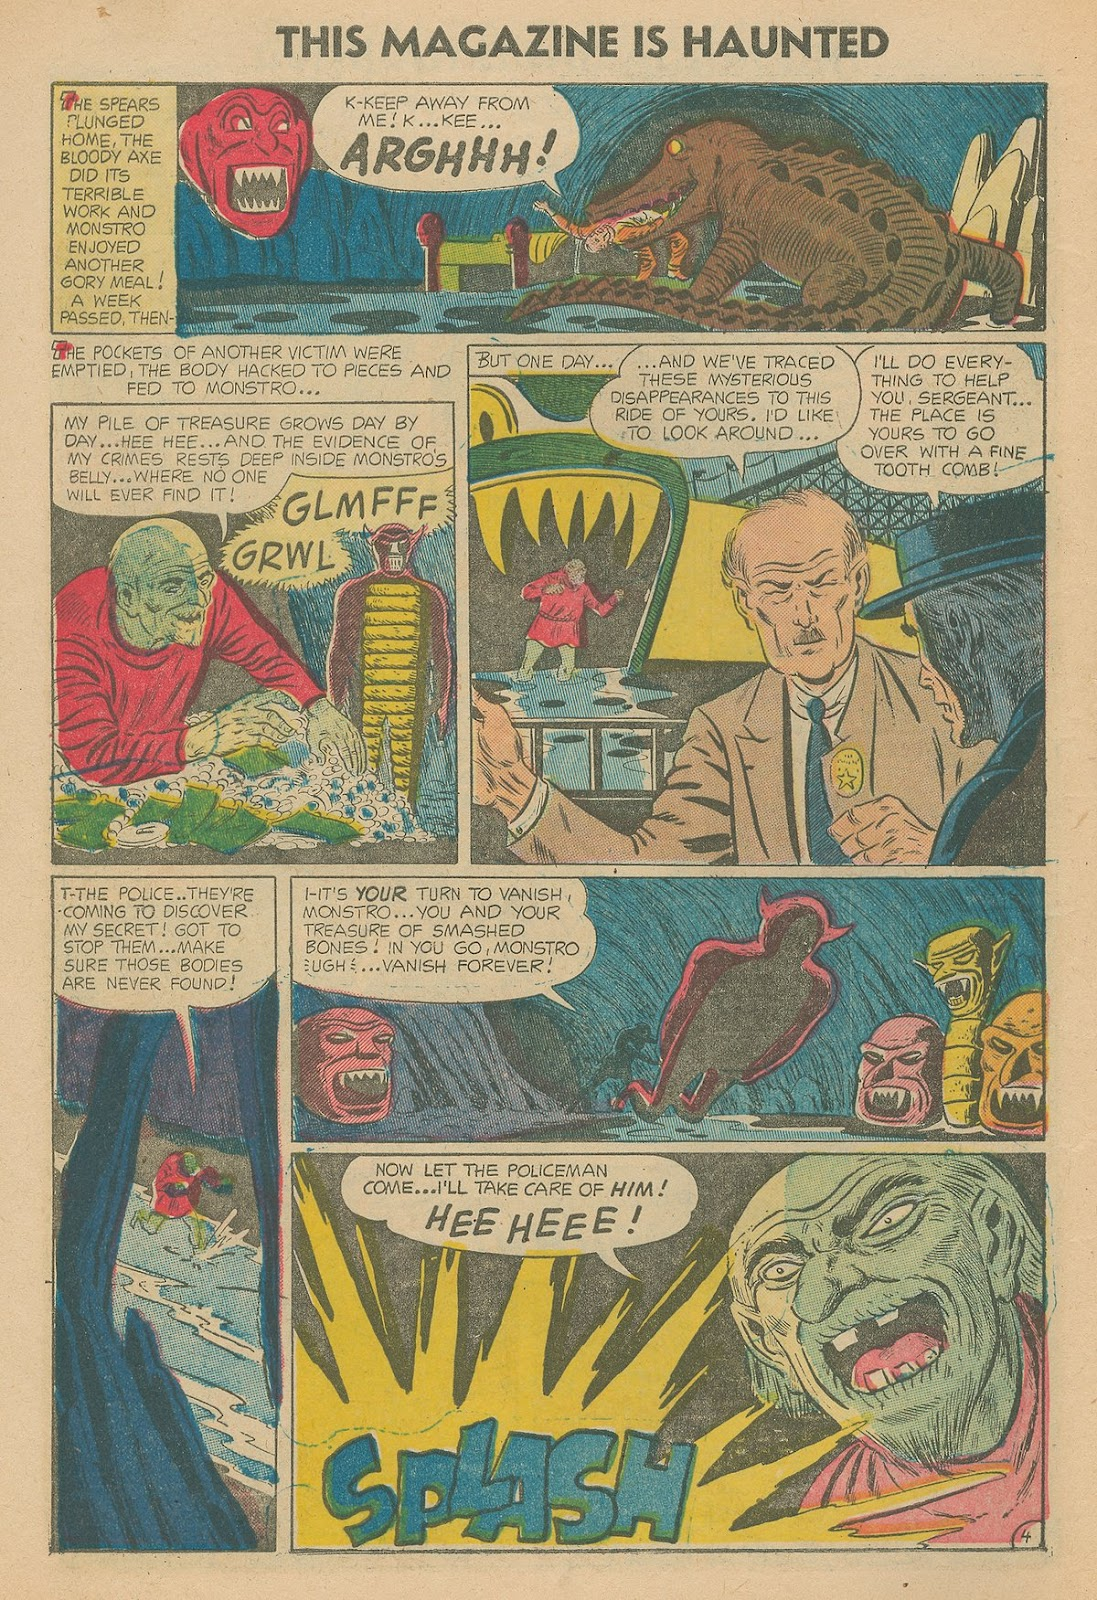 Read online This Magazine Is Haunted comic -  Issue #21 - 10